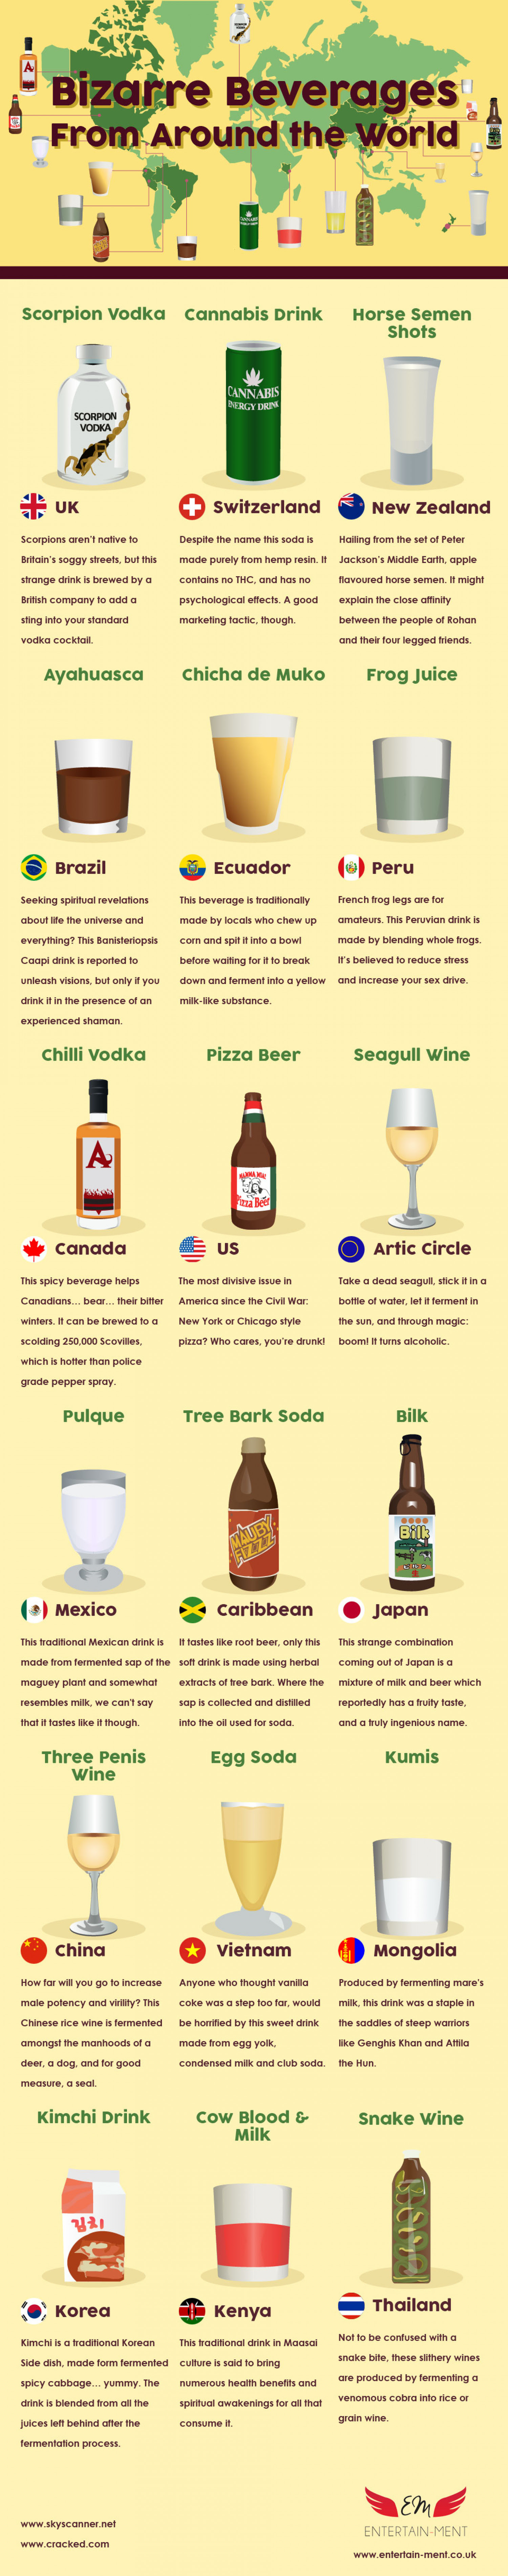 Bizarre Beverages From Around the World Infographic